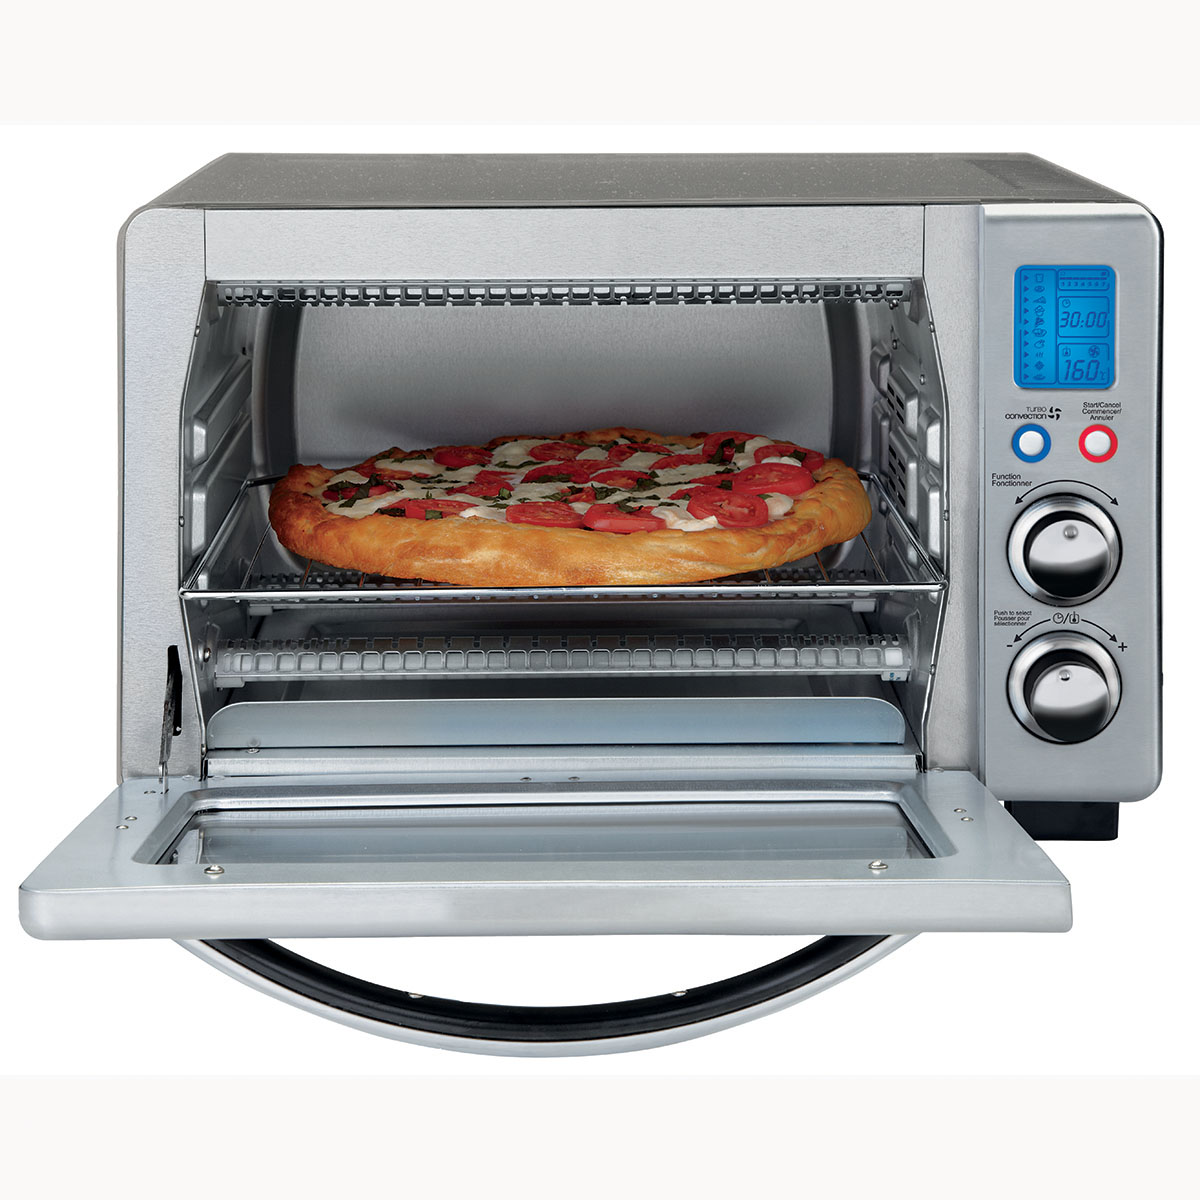 Countertop Roaster Oven Oster 6 Slice Digital Countertop Oven With Convection